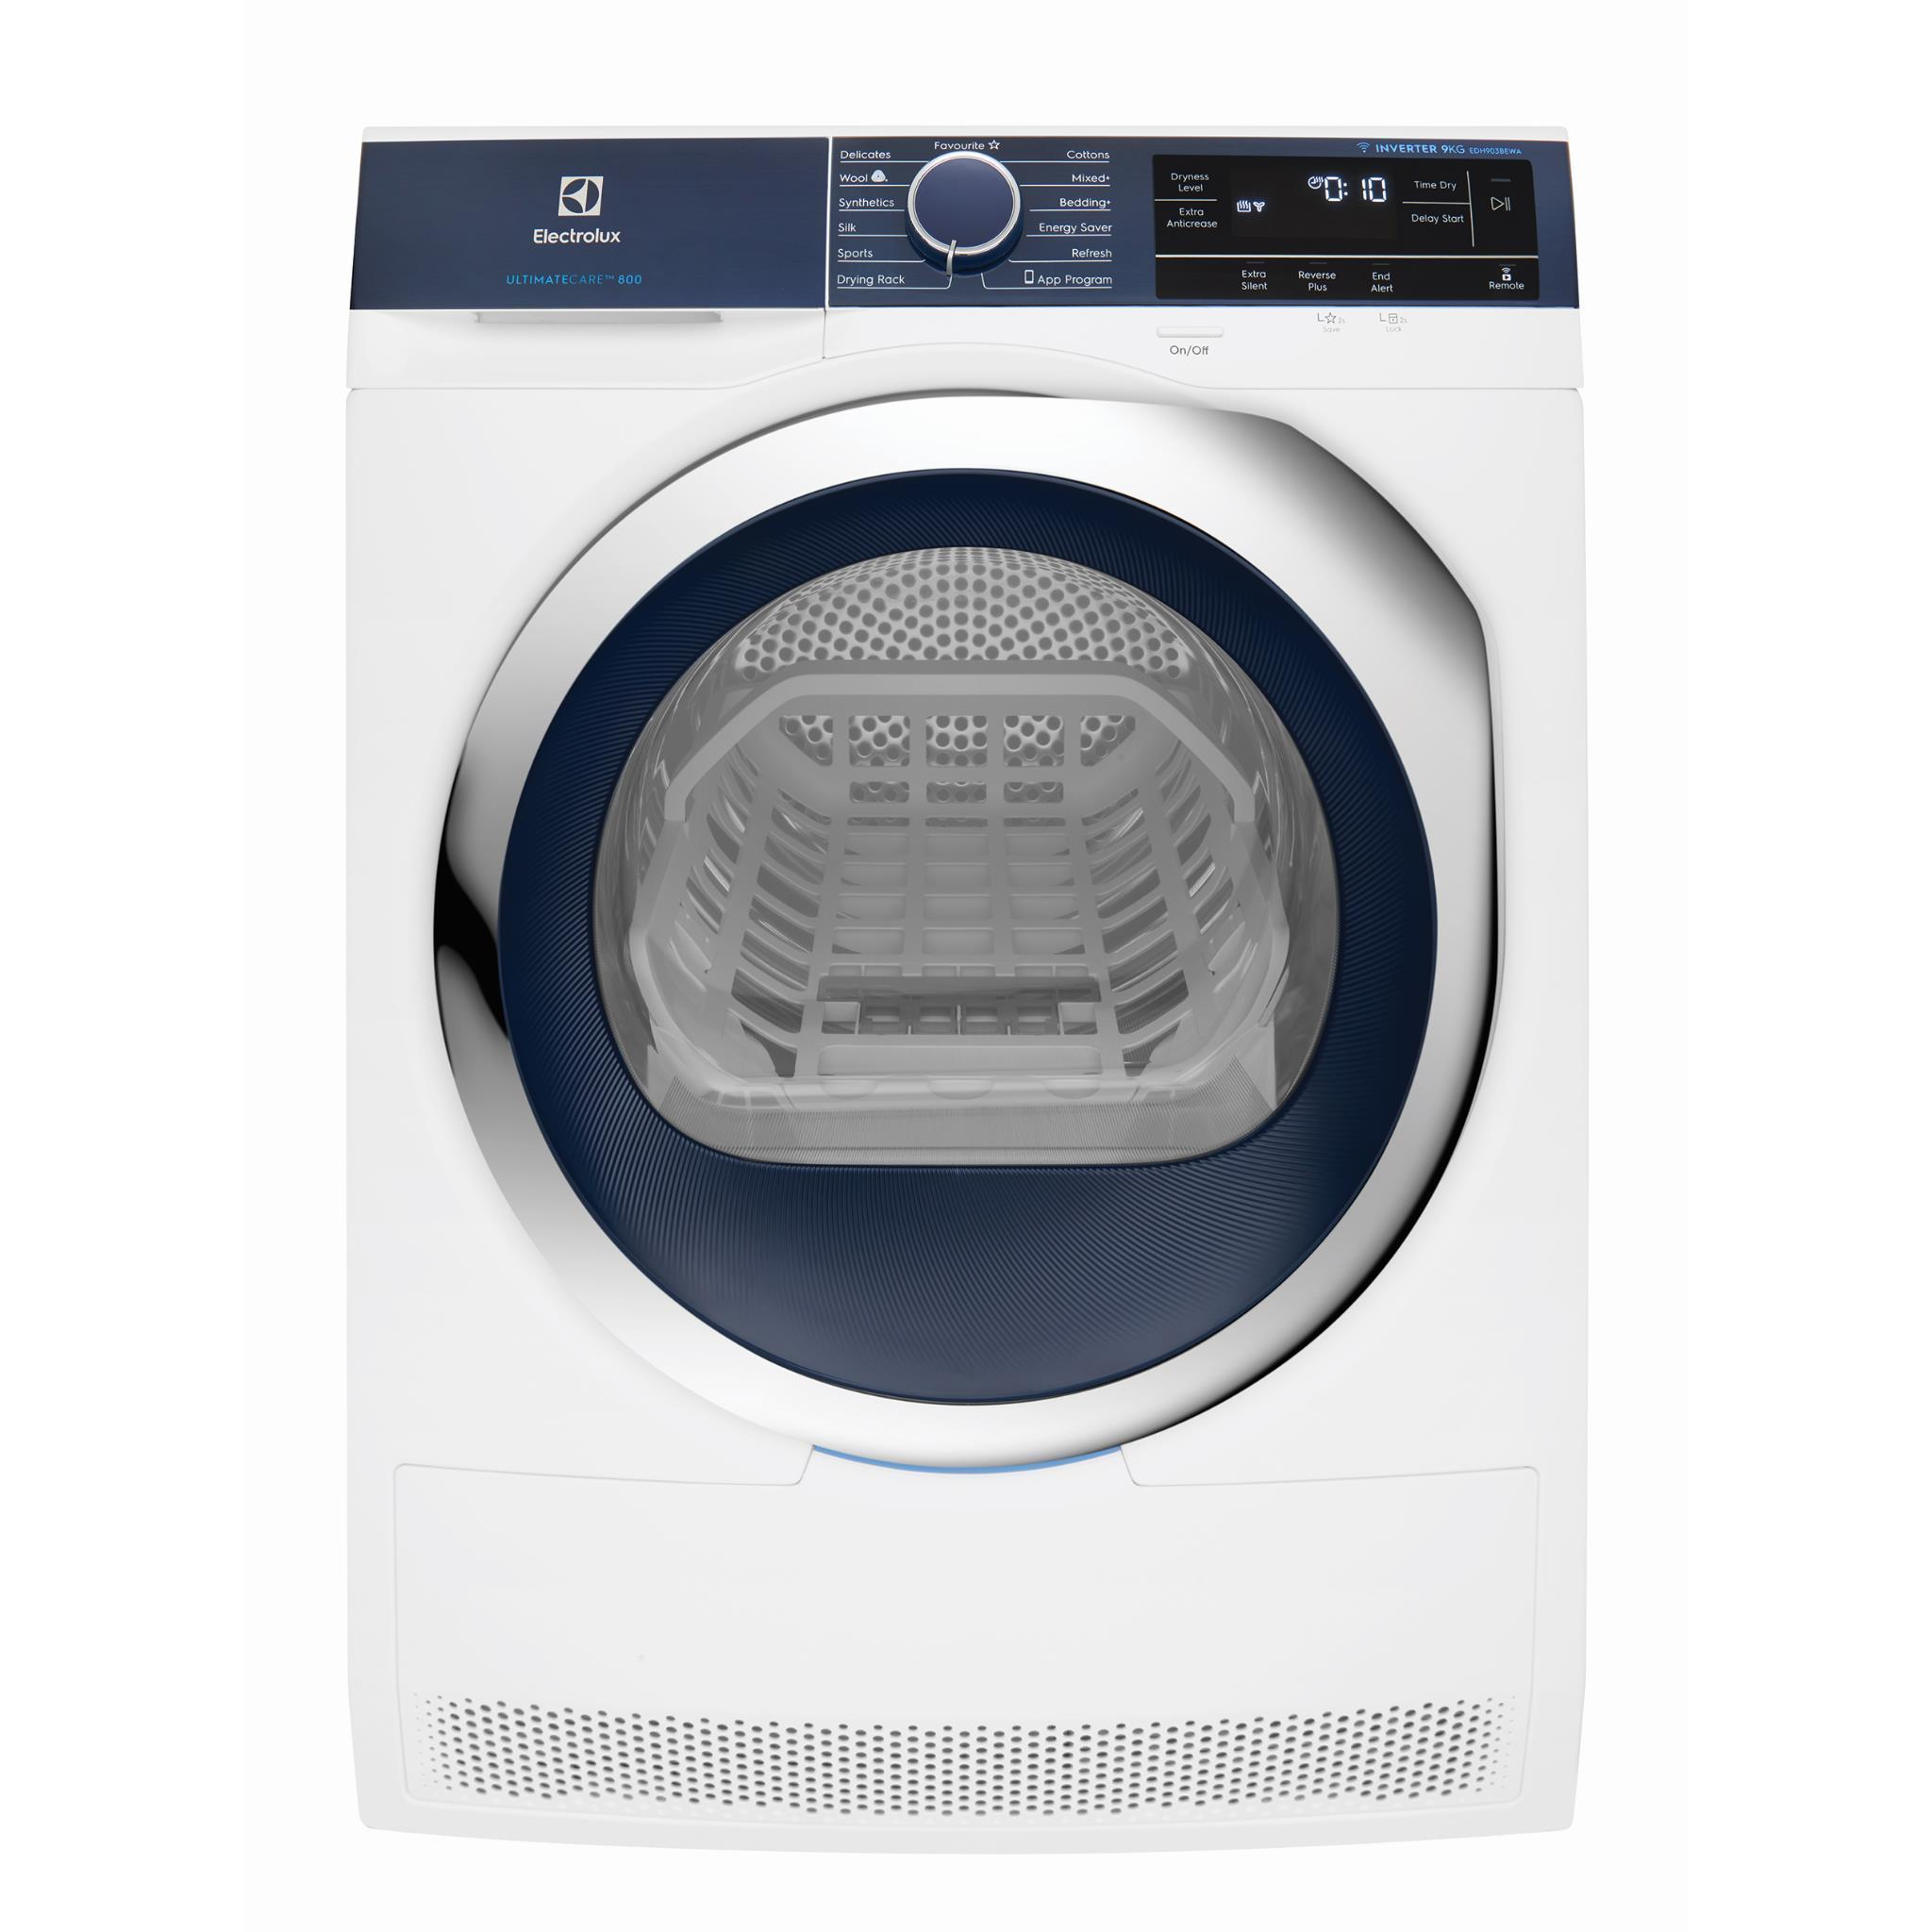 Electrolux EDH903BEWA 9kg Wi-Fi Enabled Ultimate Care Heat Pump Dryer